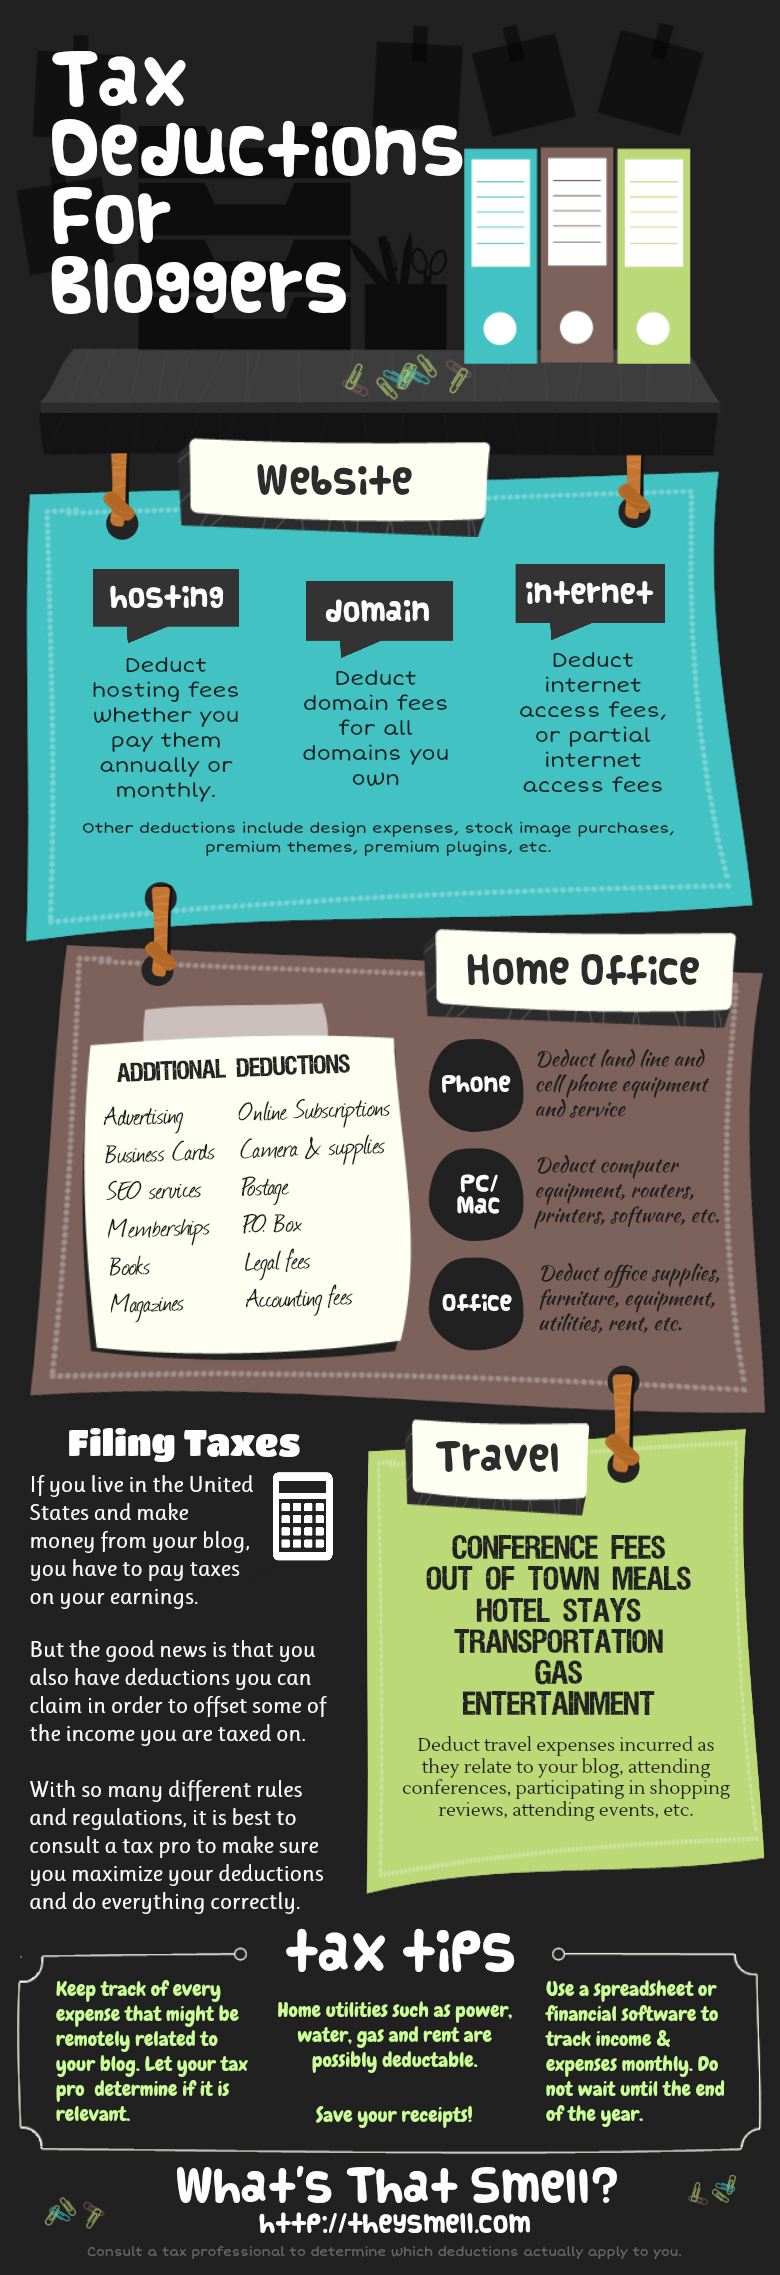 Tax Deductions For Bloggers [infographic]  @rebeccacoleman. Klondike Bar Shot Recipe Sales Tax Refund Usa. Cloud Business Management Tax Lien California. Credit Card Accepted At Costco. Bad Car Accidents Pictures Mba Schools Online. Masters In Social Work Degree. Umbilical Stem Cell Research. At&t U Verse And Internet Dentist Las Colinas. Captive Insurance Program Online I T Classes